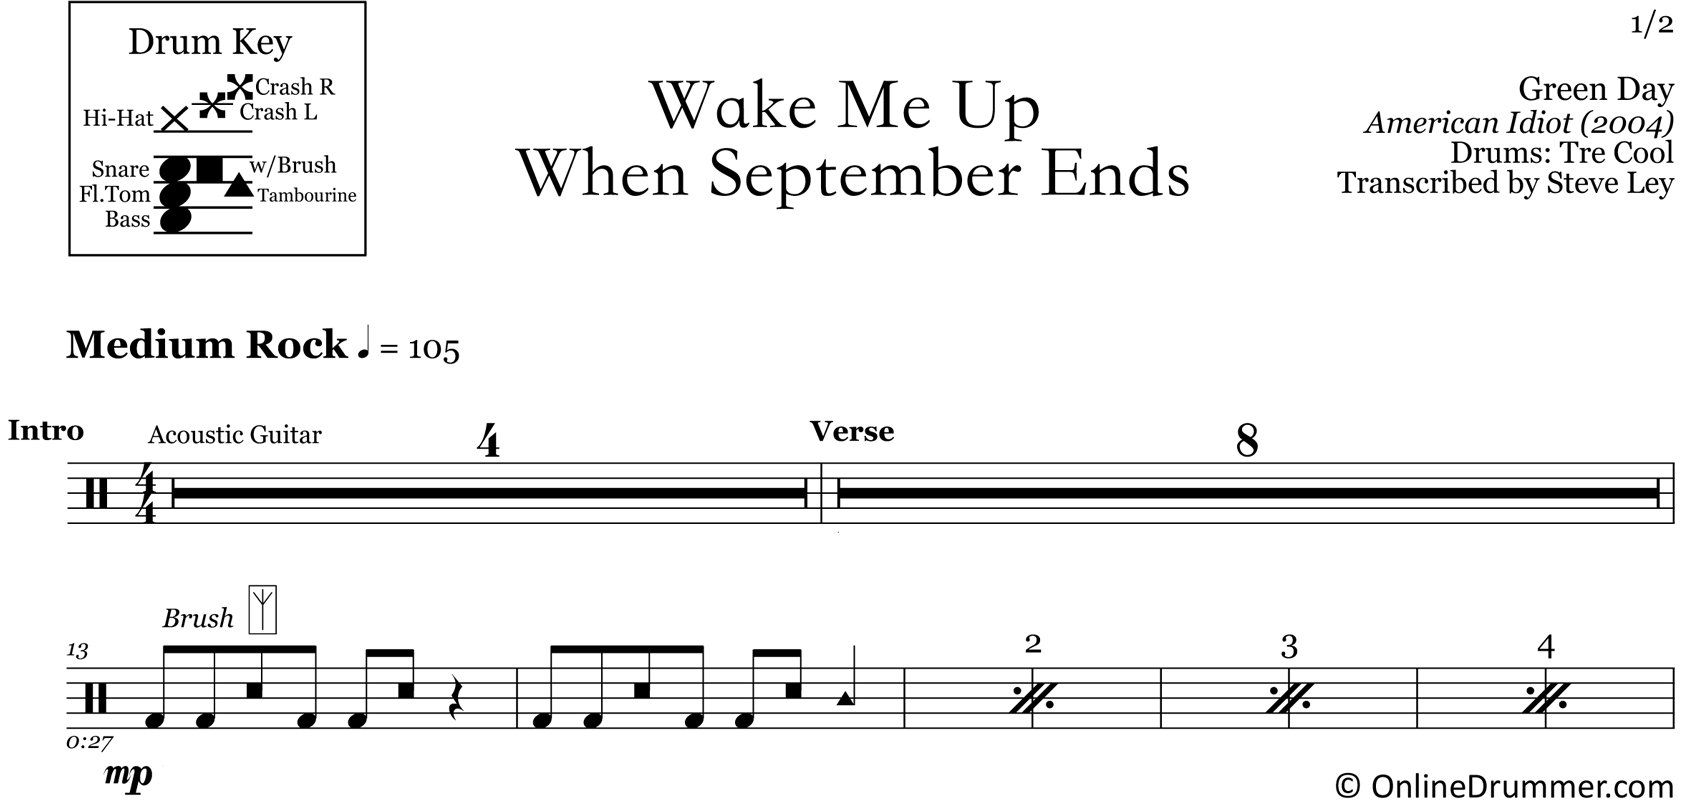 Wake Me Up When September Ends - Green Day - Drum Sheet Music